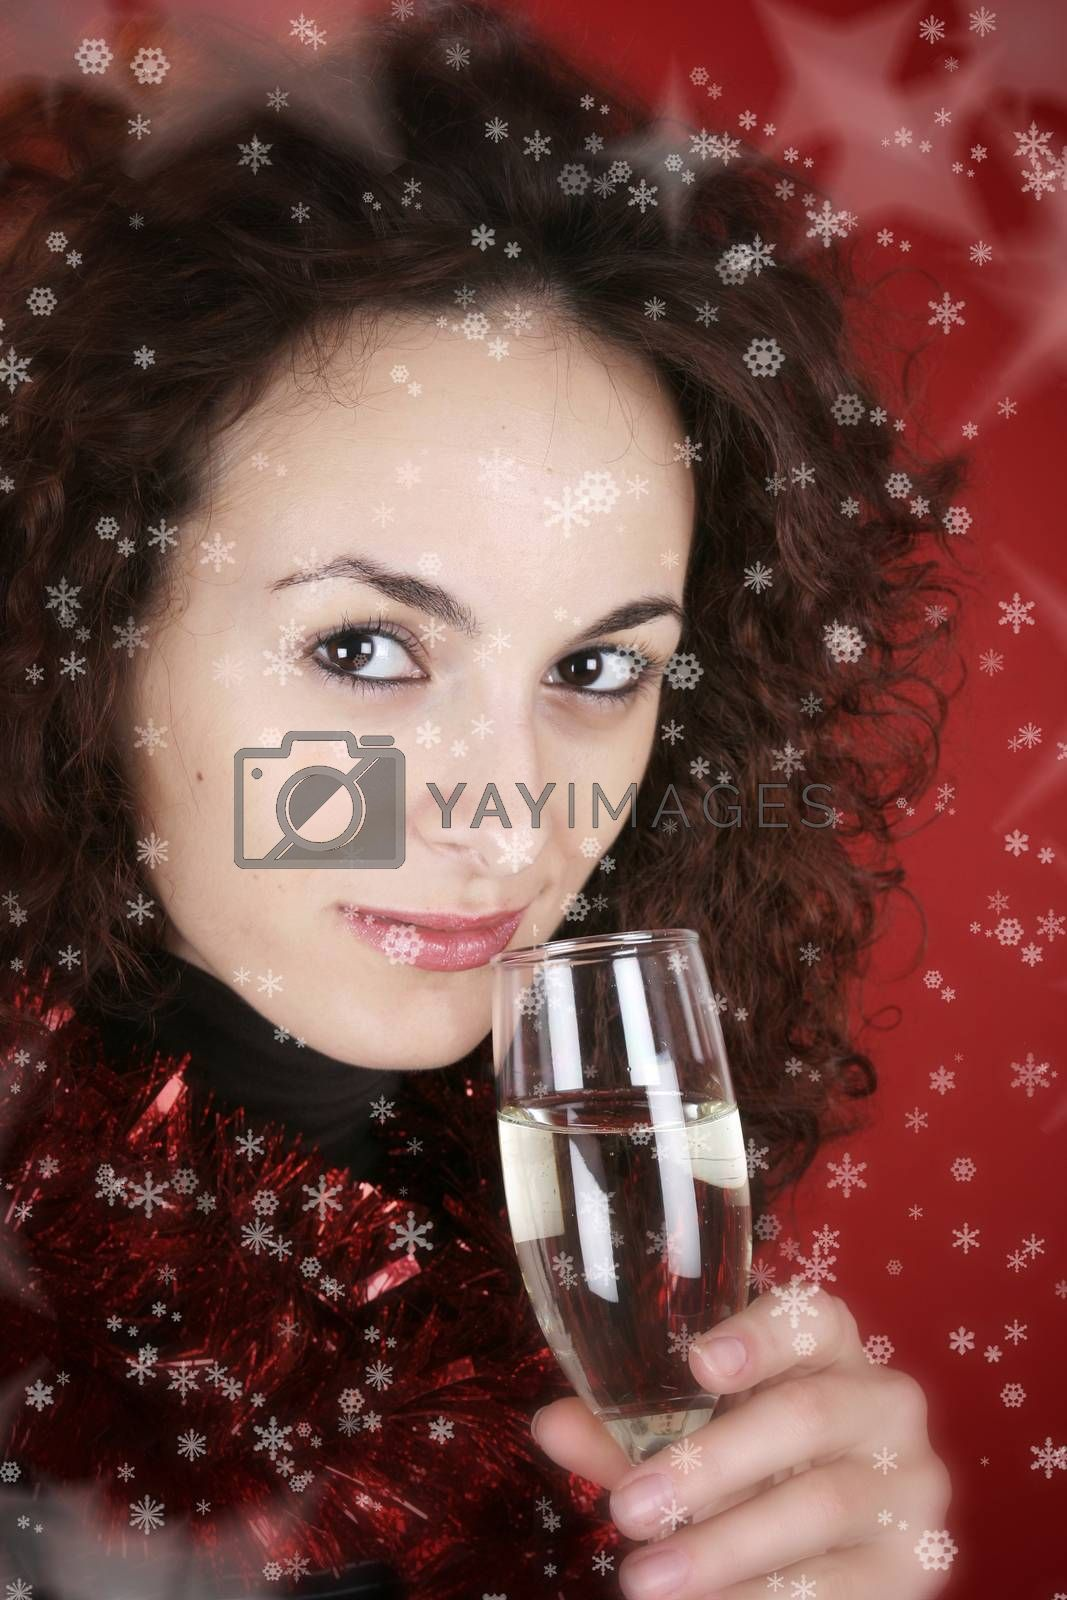 Woman drinking champagne . Happy new year!